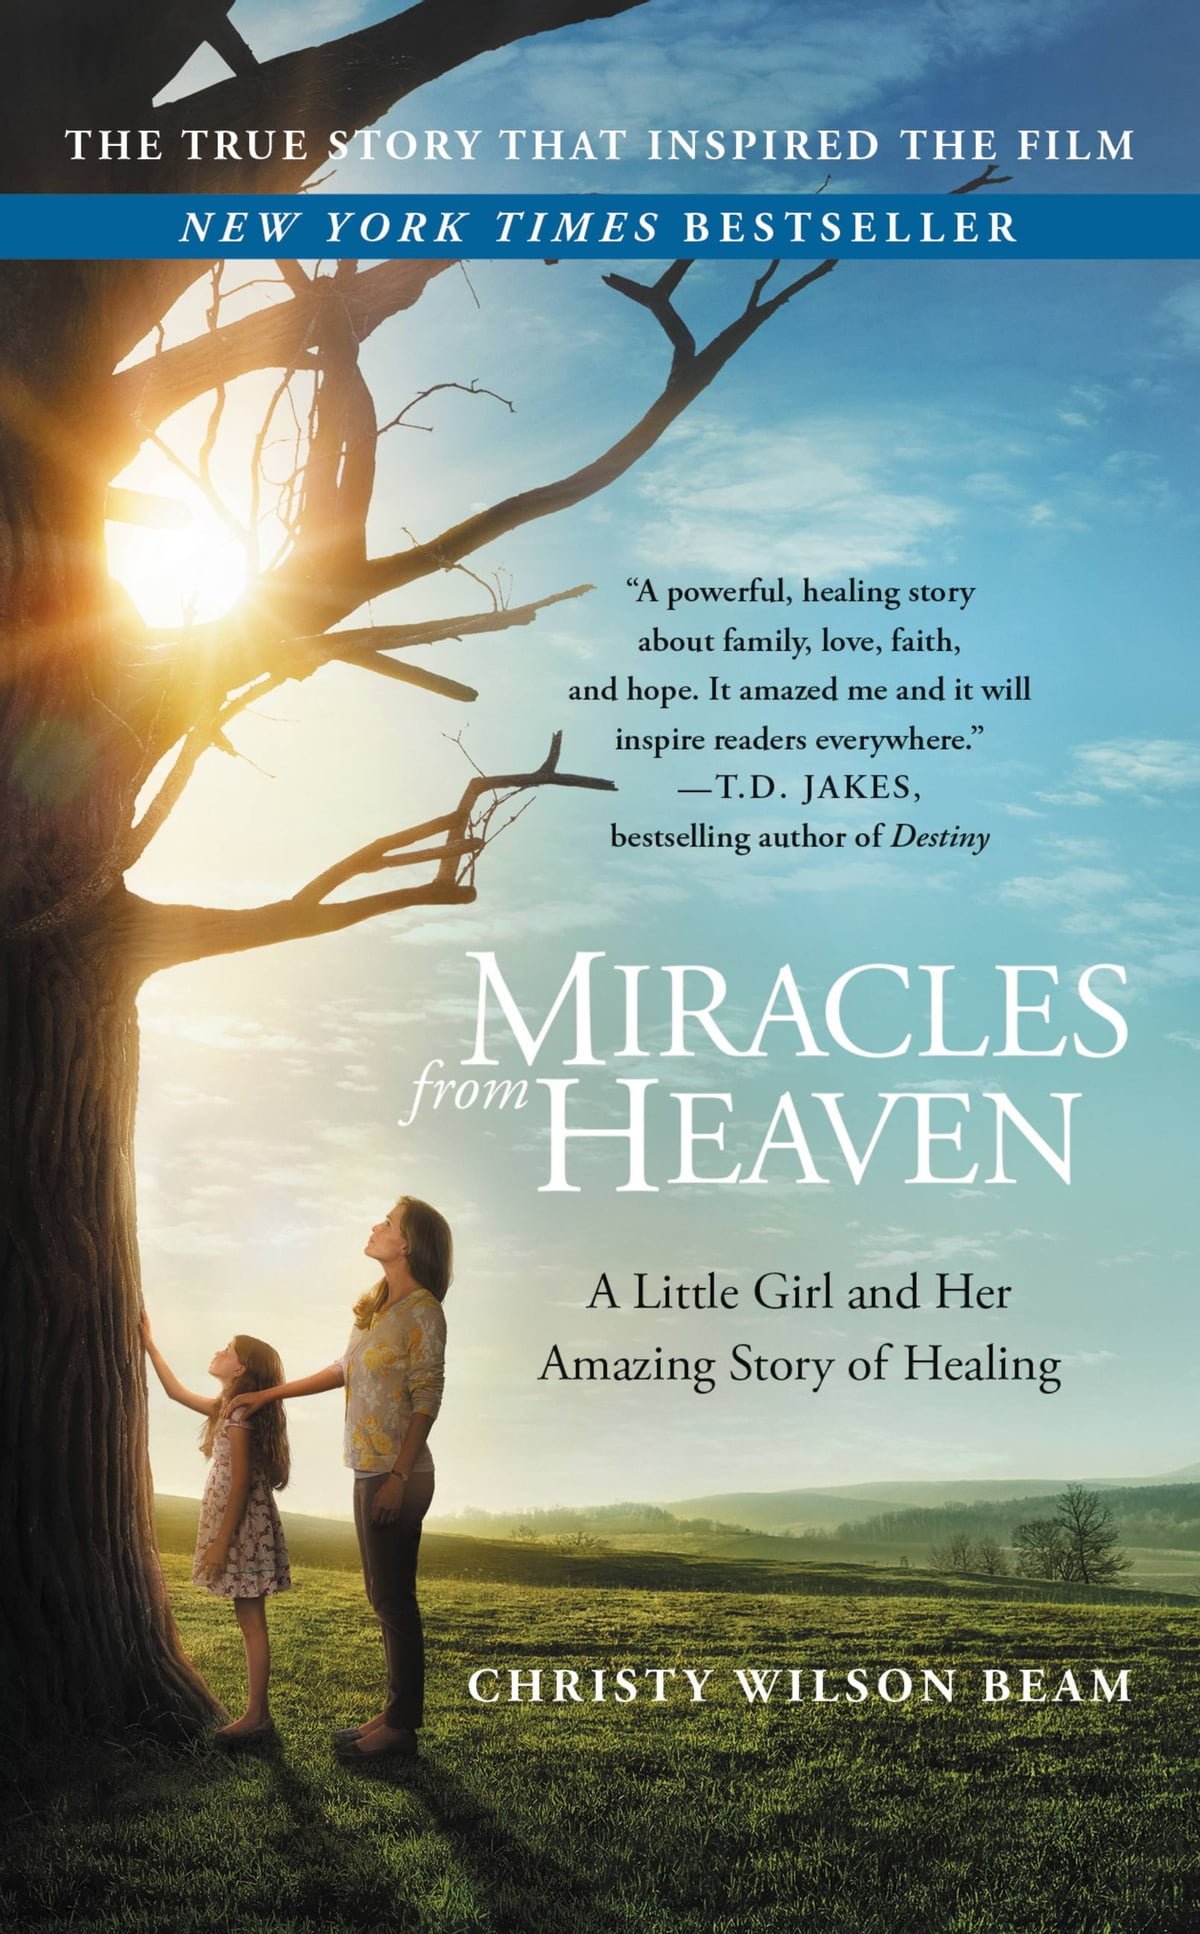 Miracles From Heaven Ebook By Christy Wilson Beam  9780316381857  Rakuten  Kobo